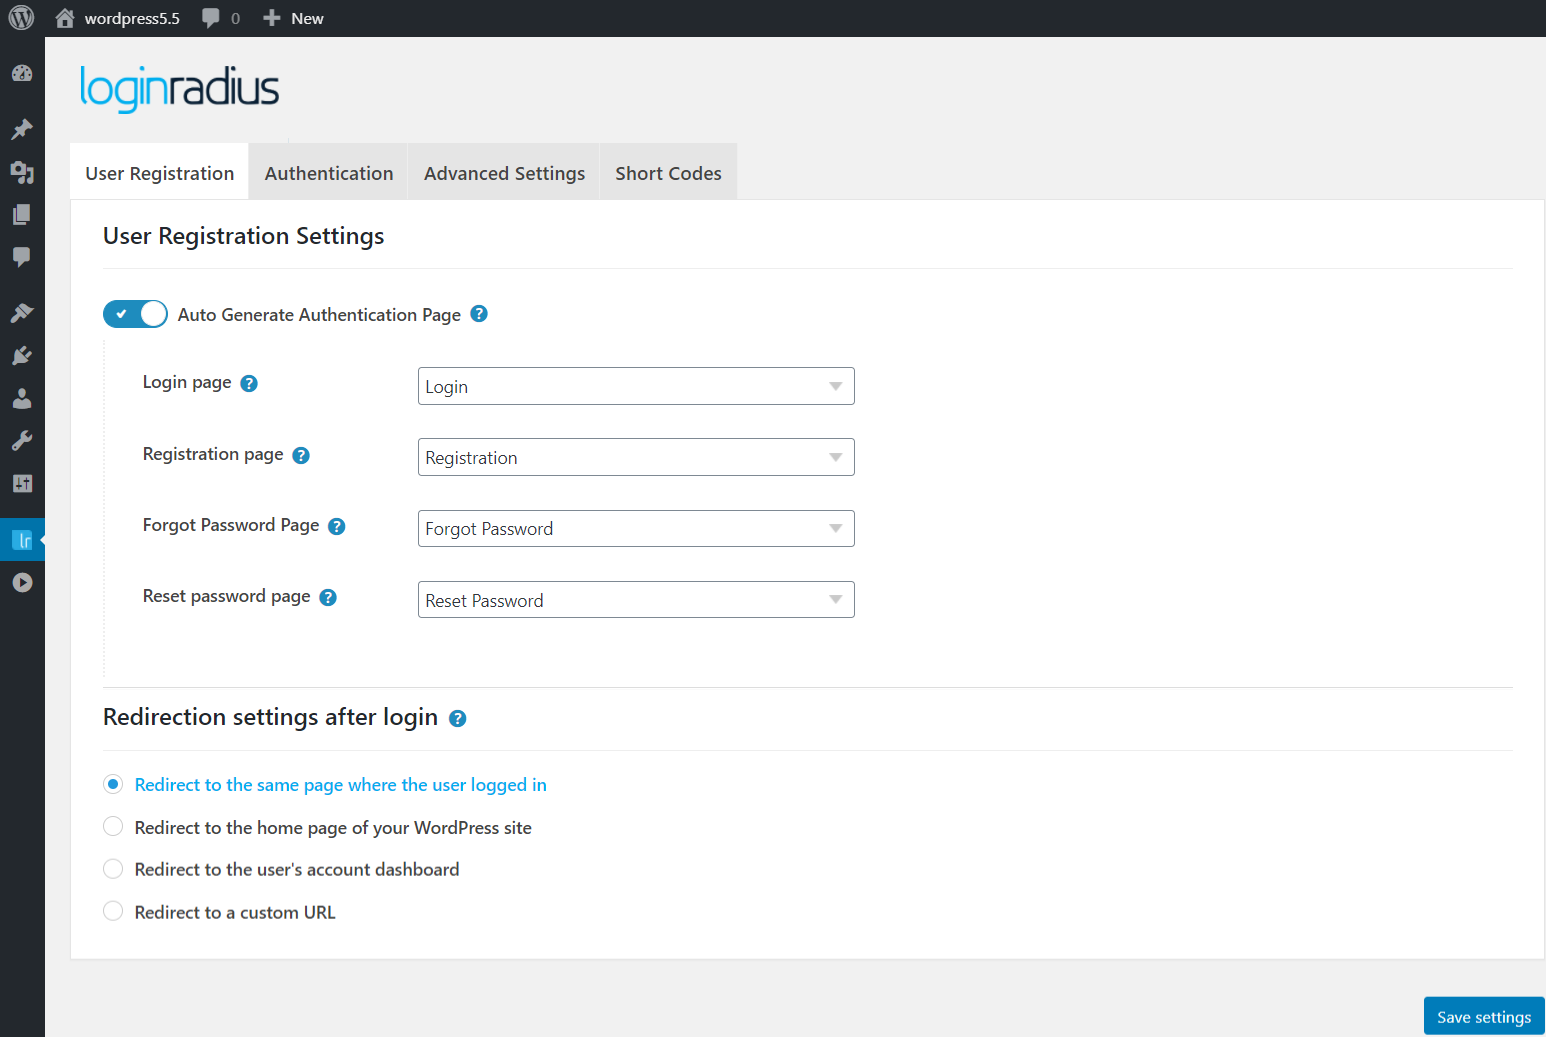 loginradius-for-wordpress screenshot 1